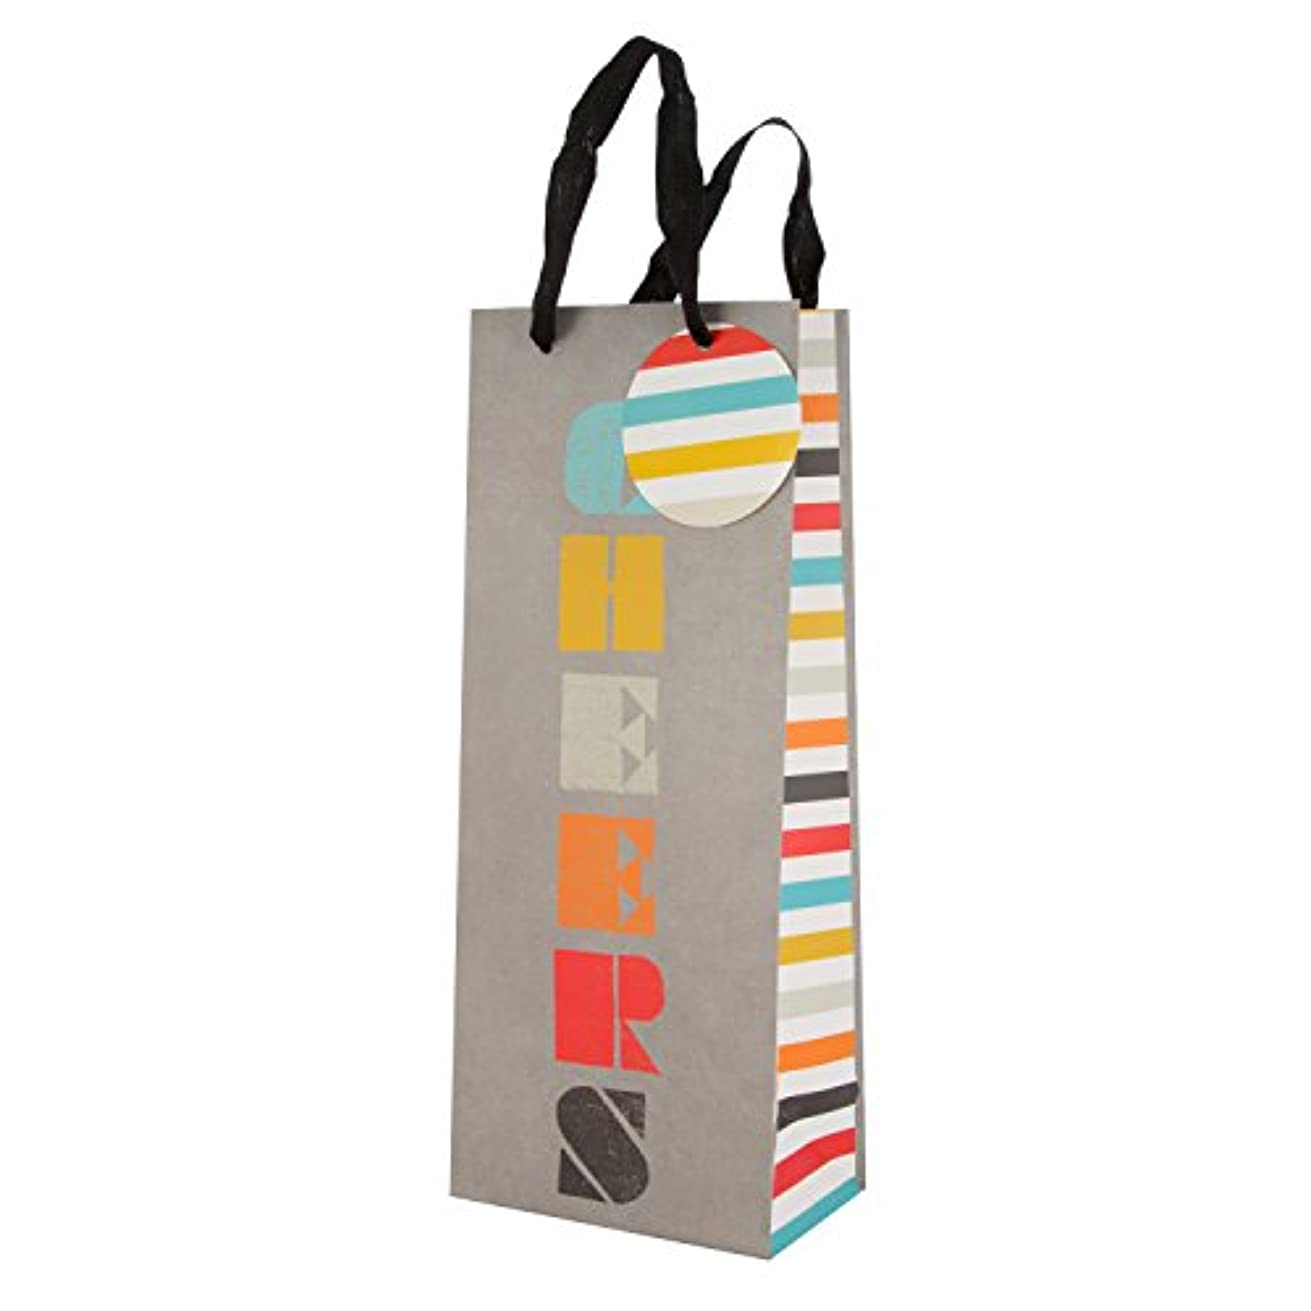 Colourful Gift Bag 'Cheers' - Bottle